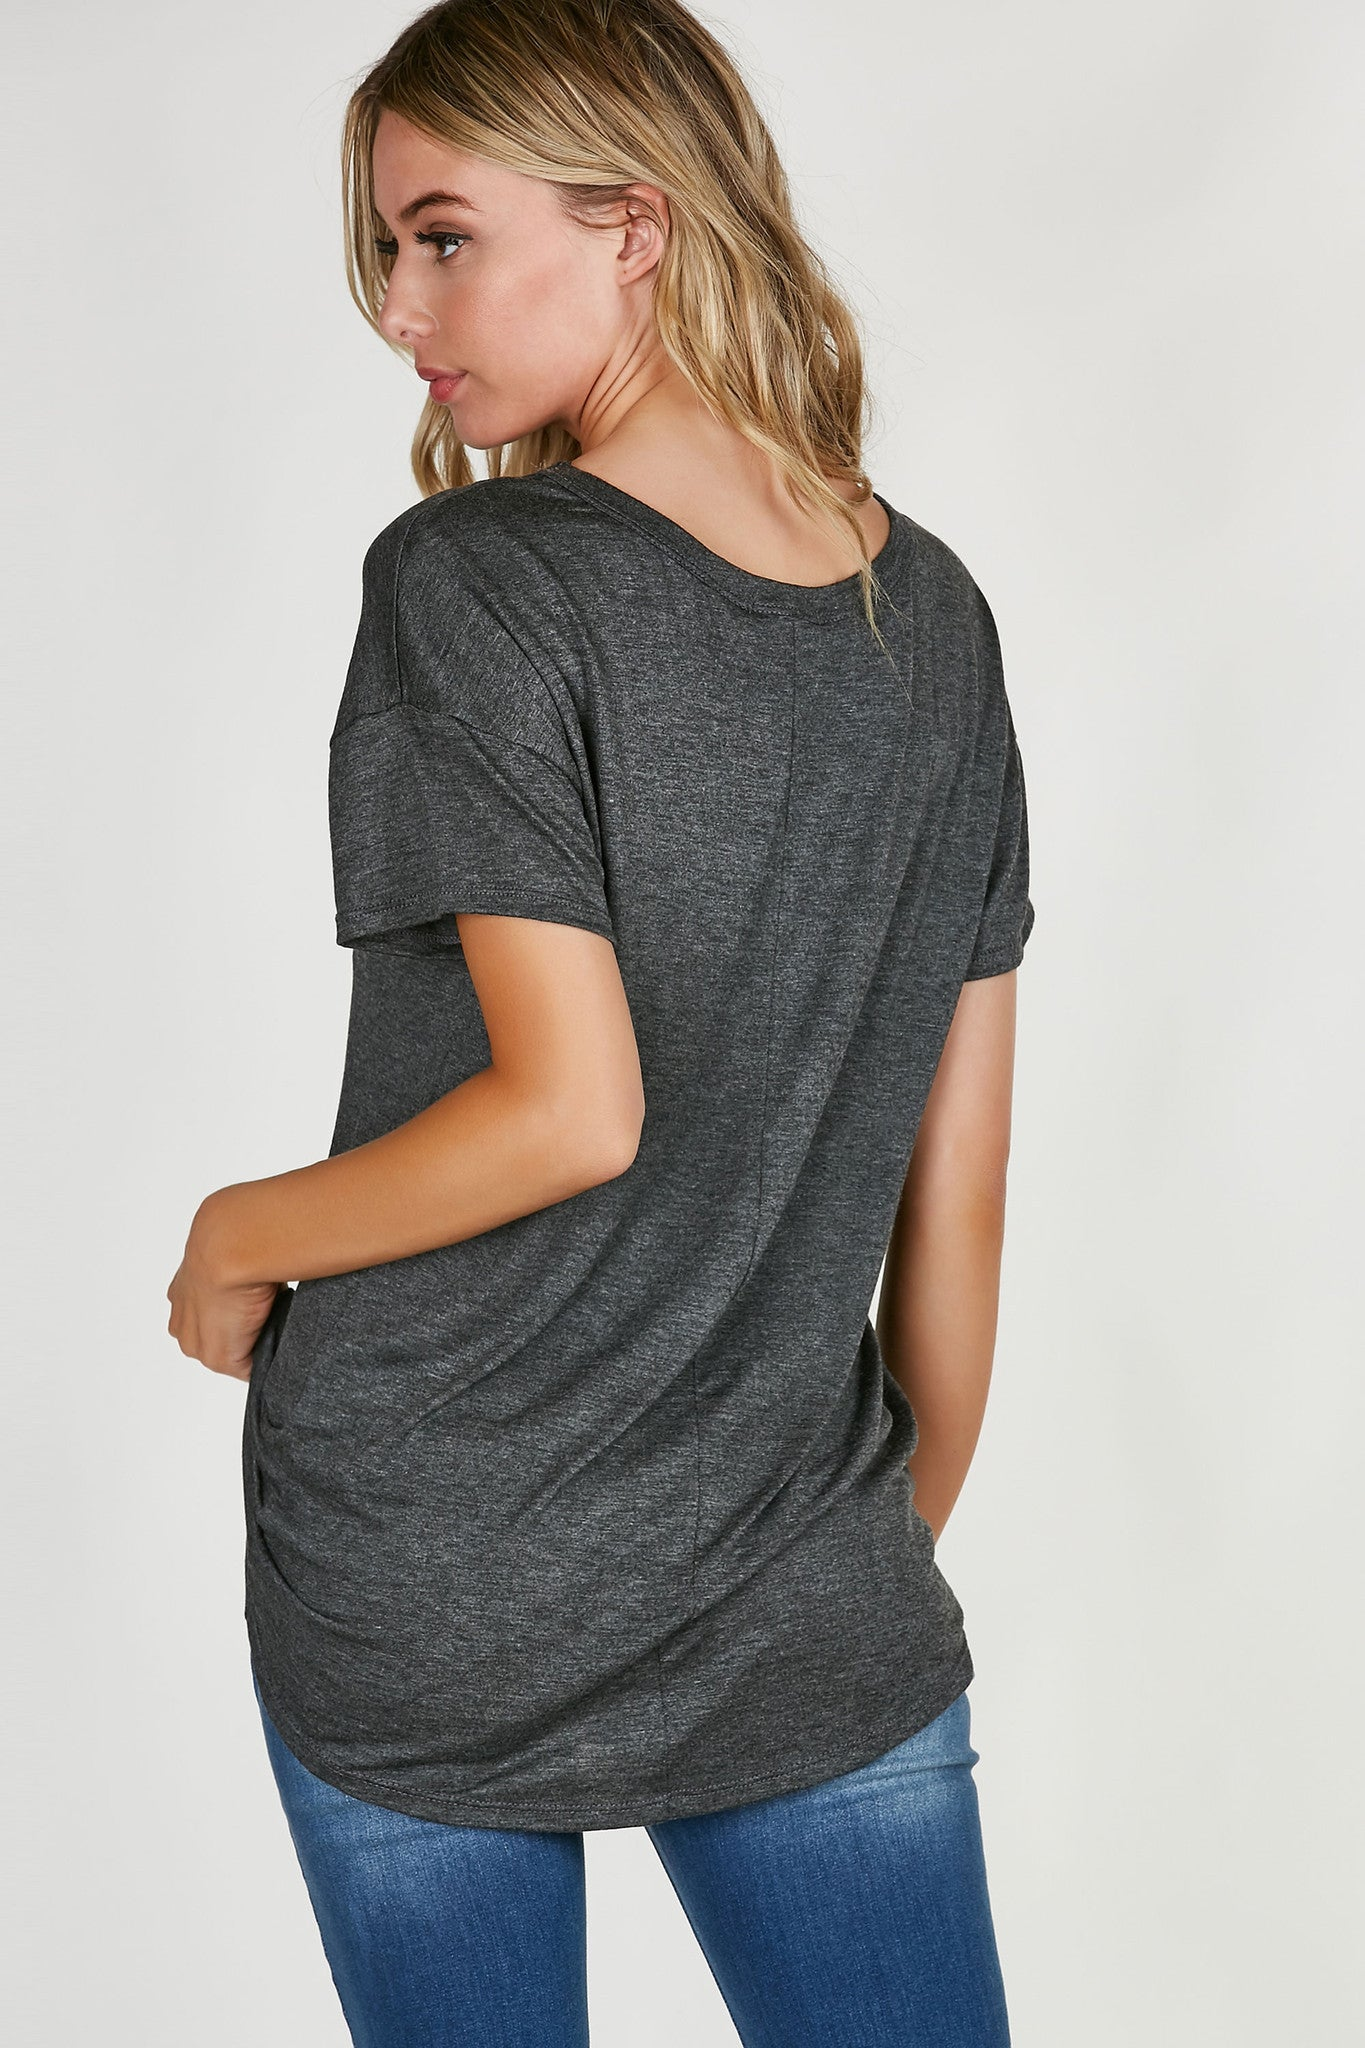 Soft V-neck tee with graphic in front. Hi-low hem with slightly oversized fit.